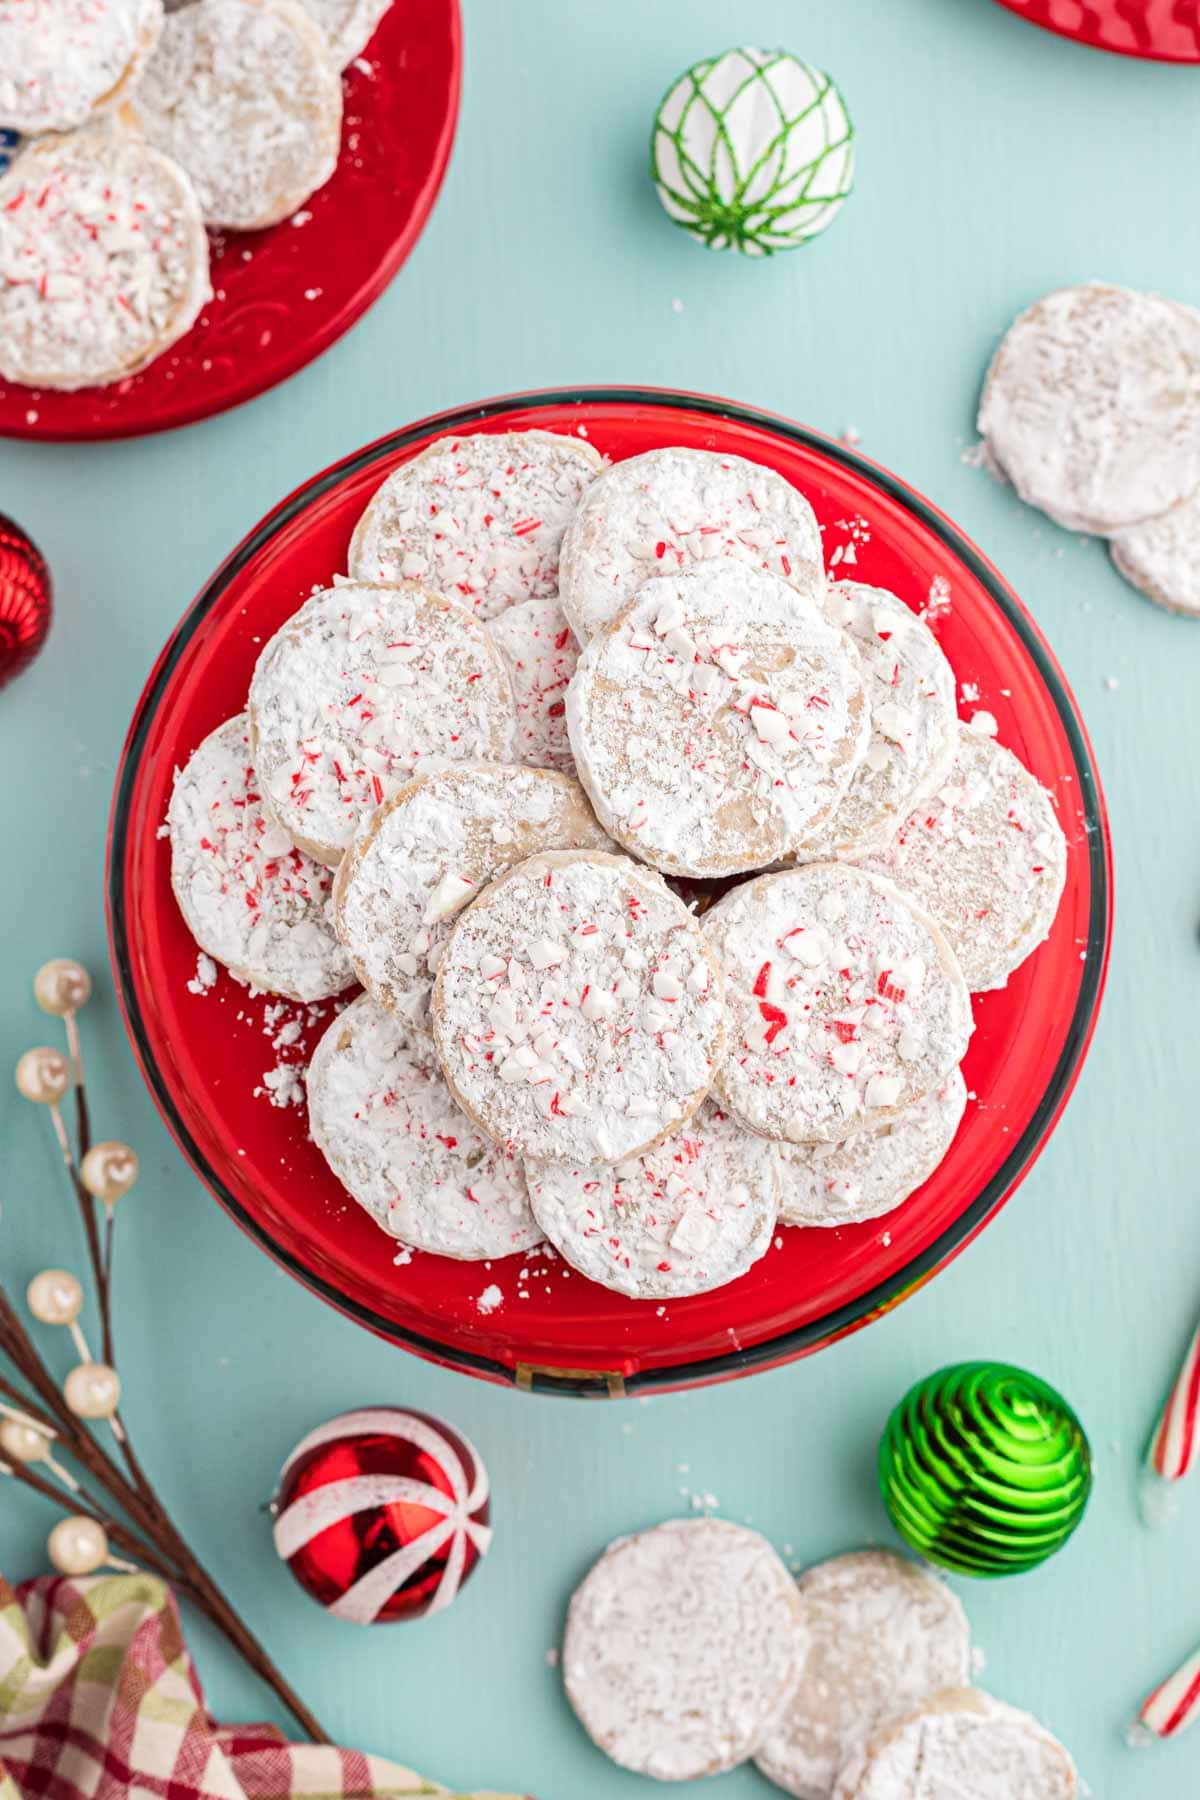 Rum cookies served on a festive red plate